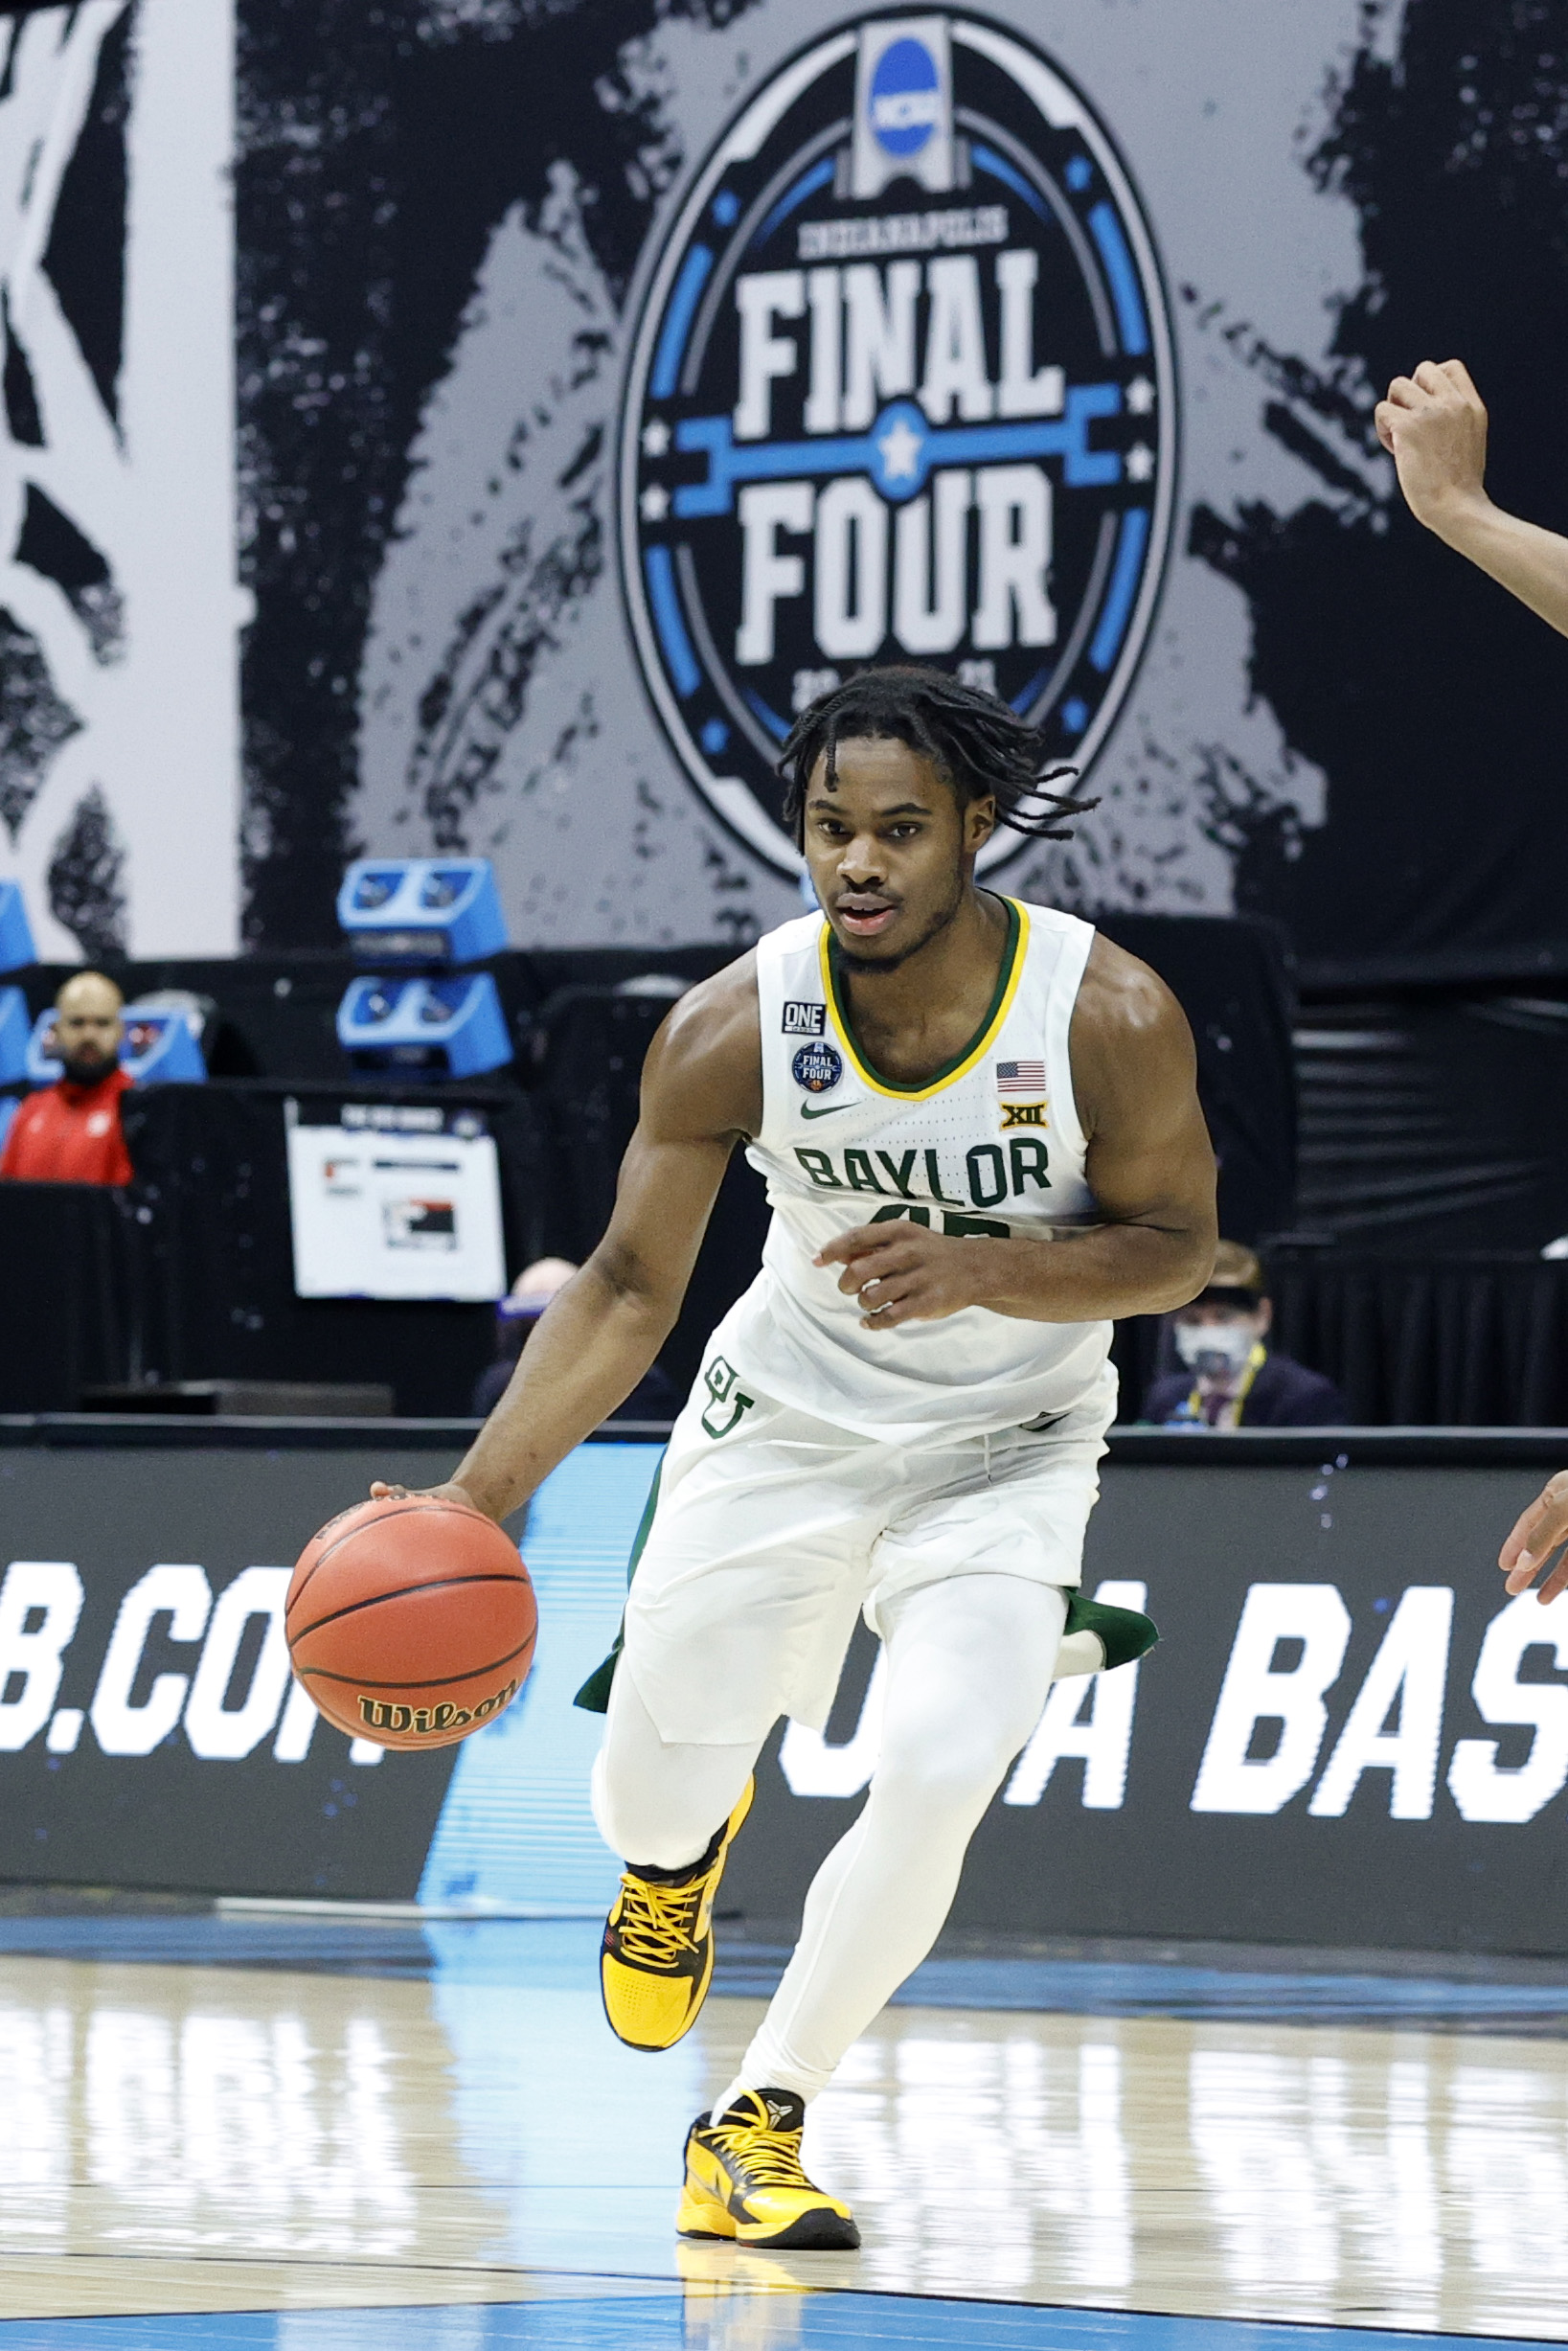 Davion Mitchell #45 of the Baylor Bears dribbles in the second half against the Houston Cougars during the 2021 NCAA Final Four semifinal at Lucas Oil Stadium on April 03, 2021 in Indianapolis, Indiana.